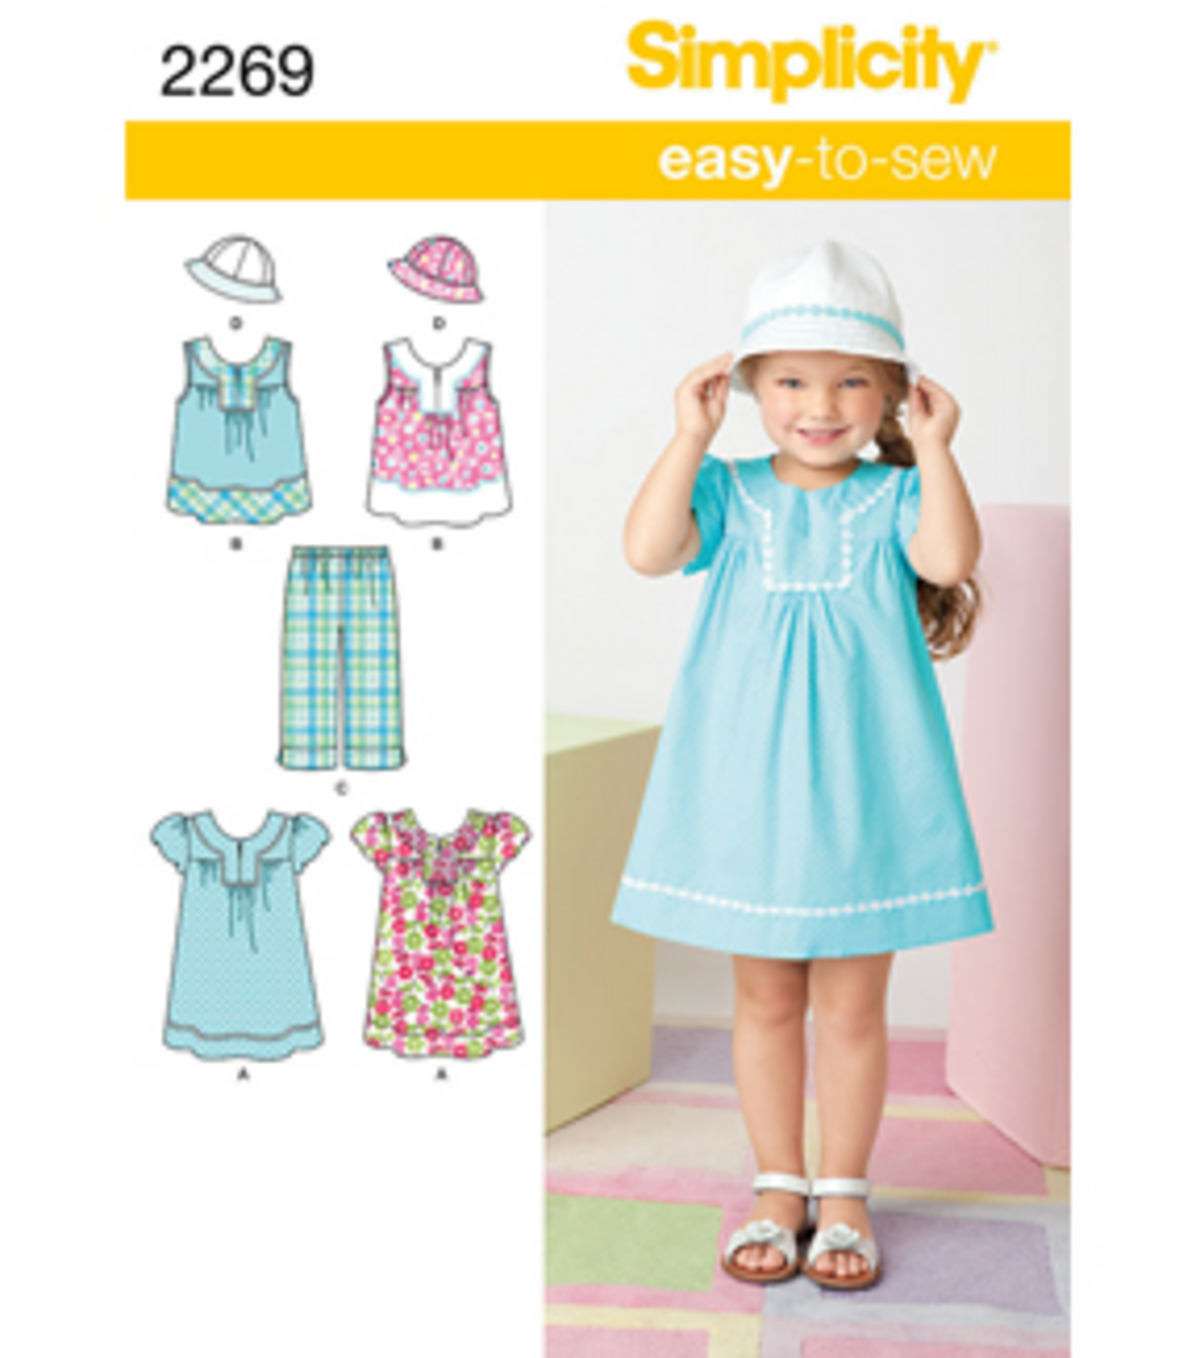 Simplicity Pattern 2269A 3-4-5-6-7--Simplicity Child